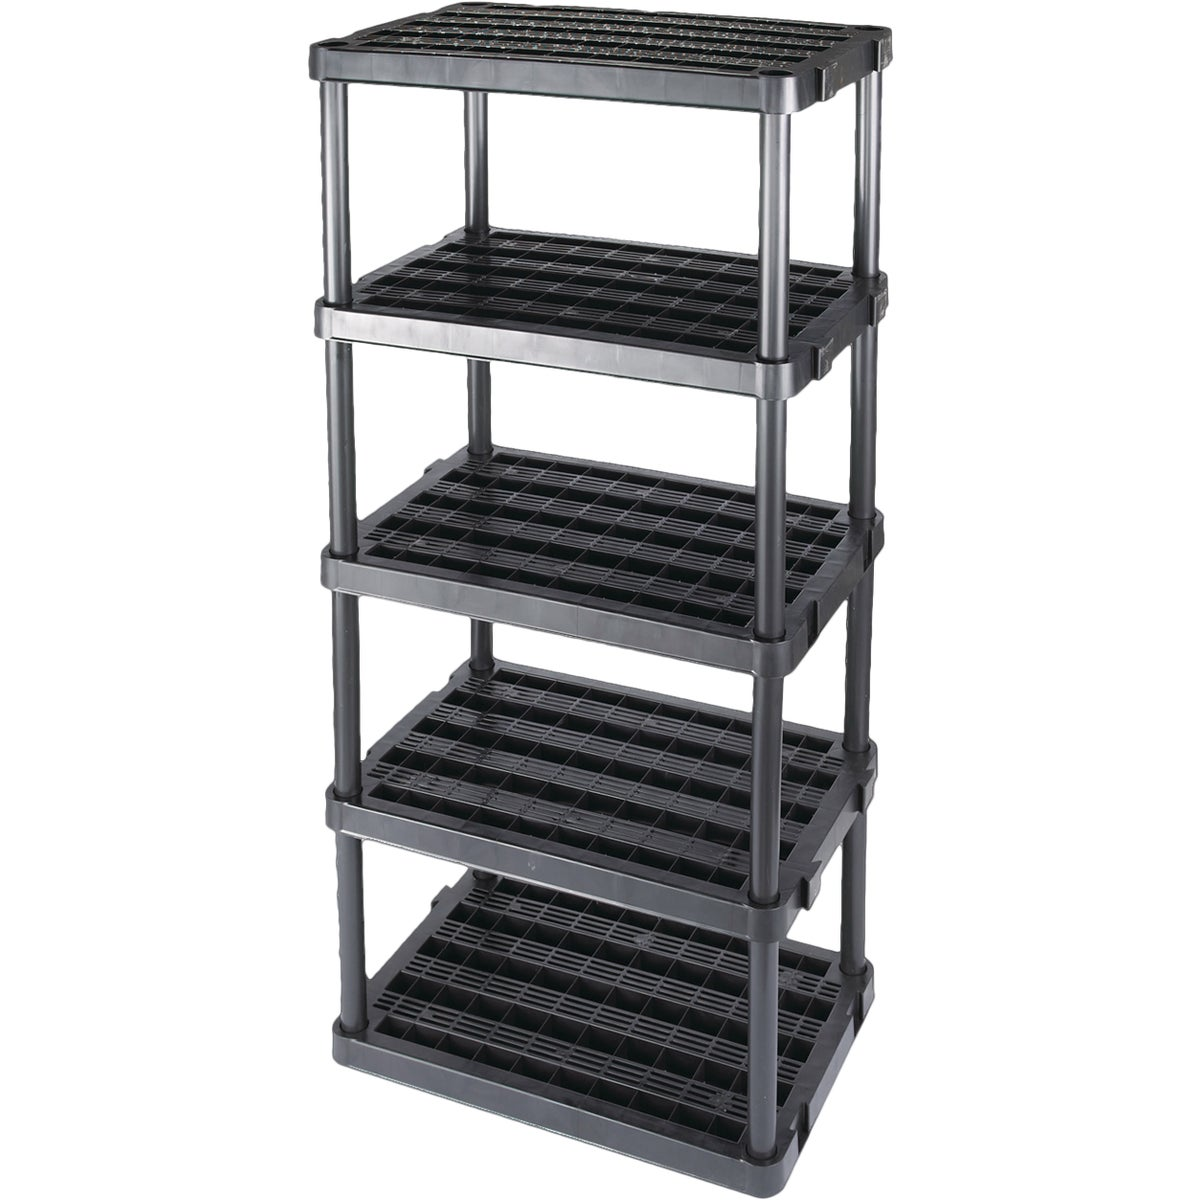 5 TIER 72X36X24 SHELF - 5TBLK24 by Centrex Plastics Llc